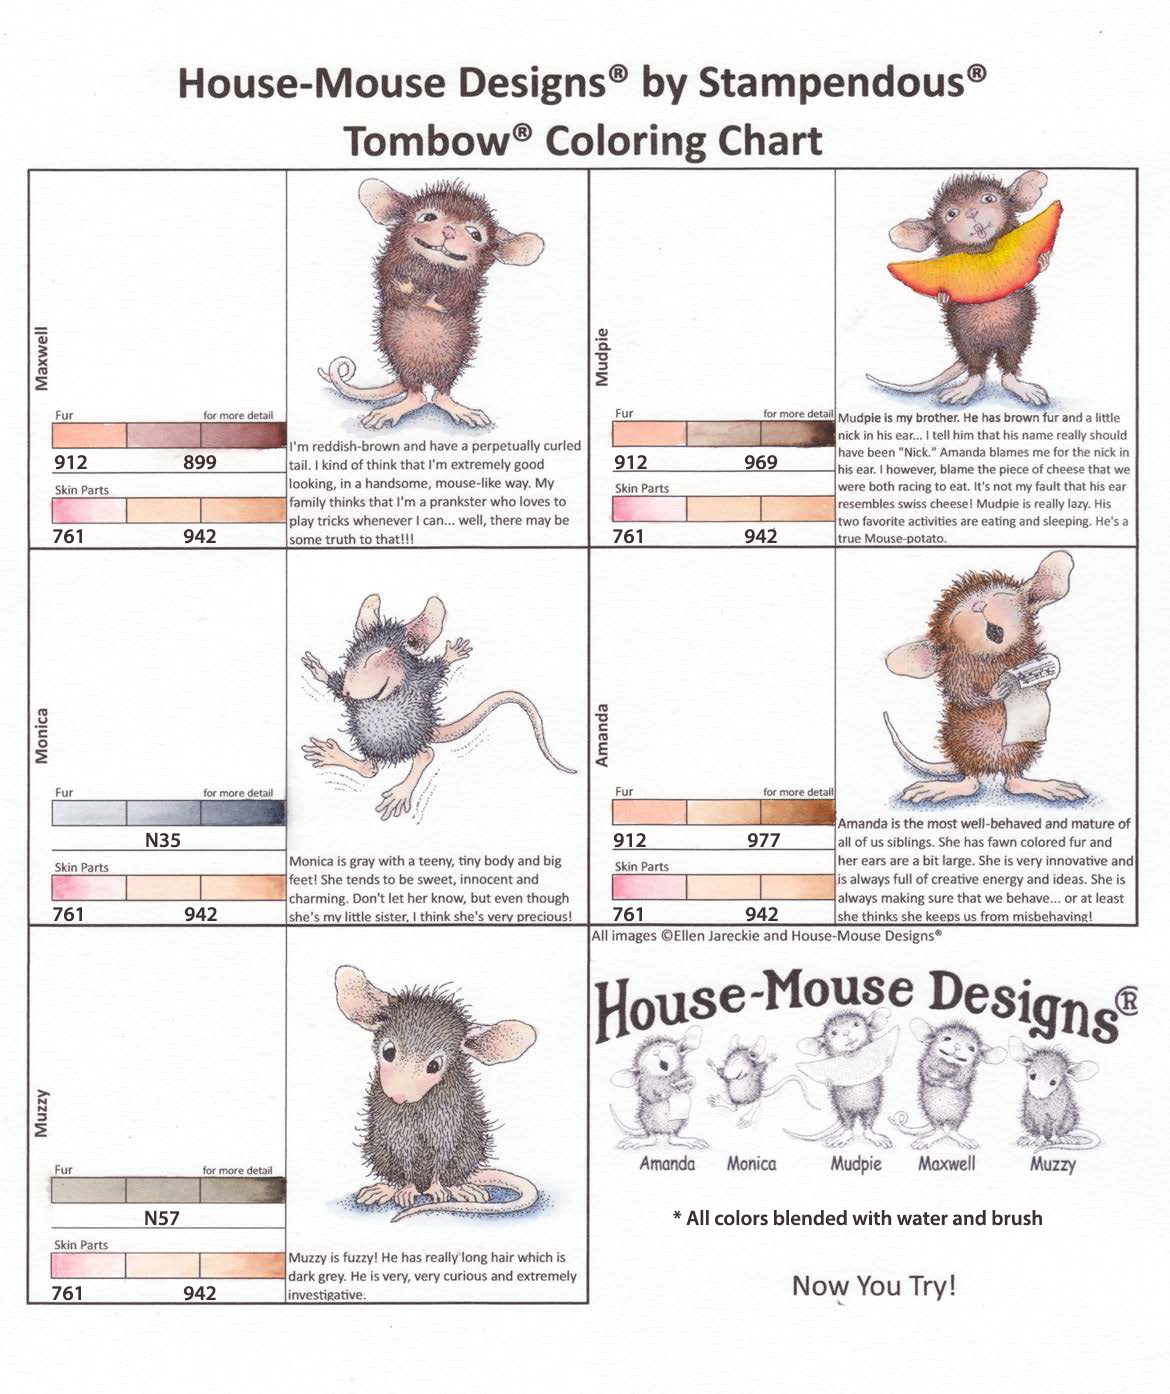 House-Mouse Designs Coloring Guide